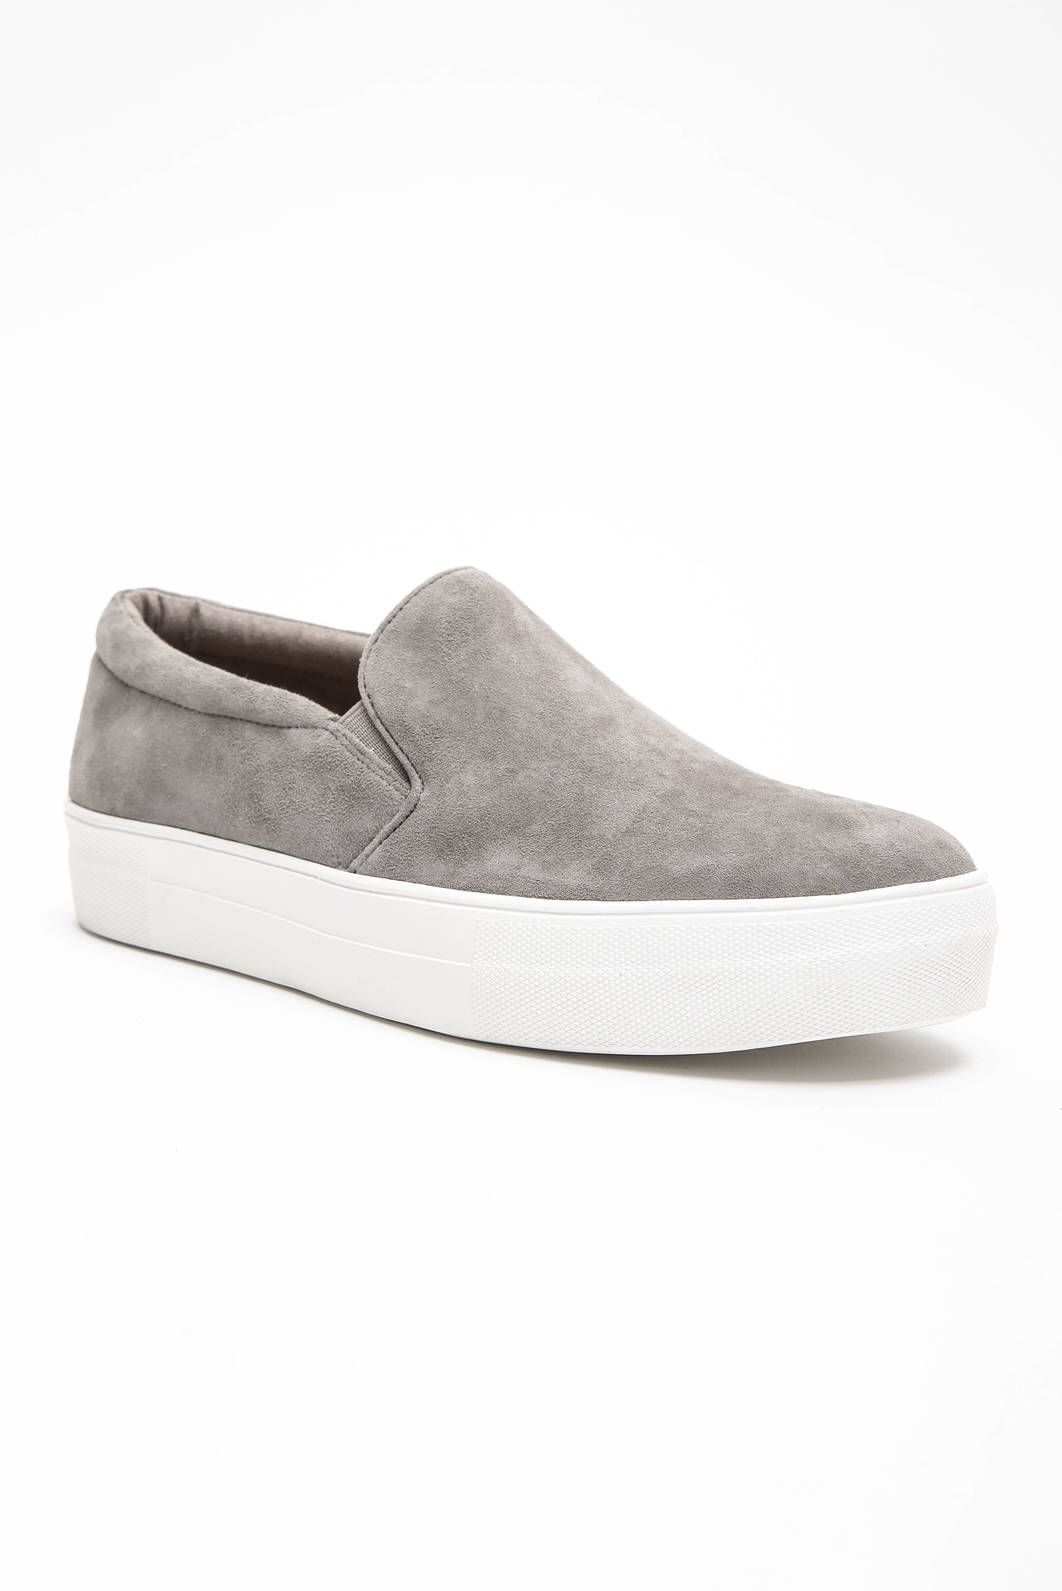 Steve Madden Gills Slip On Sneakers